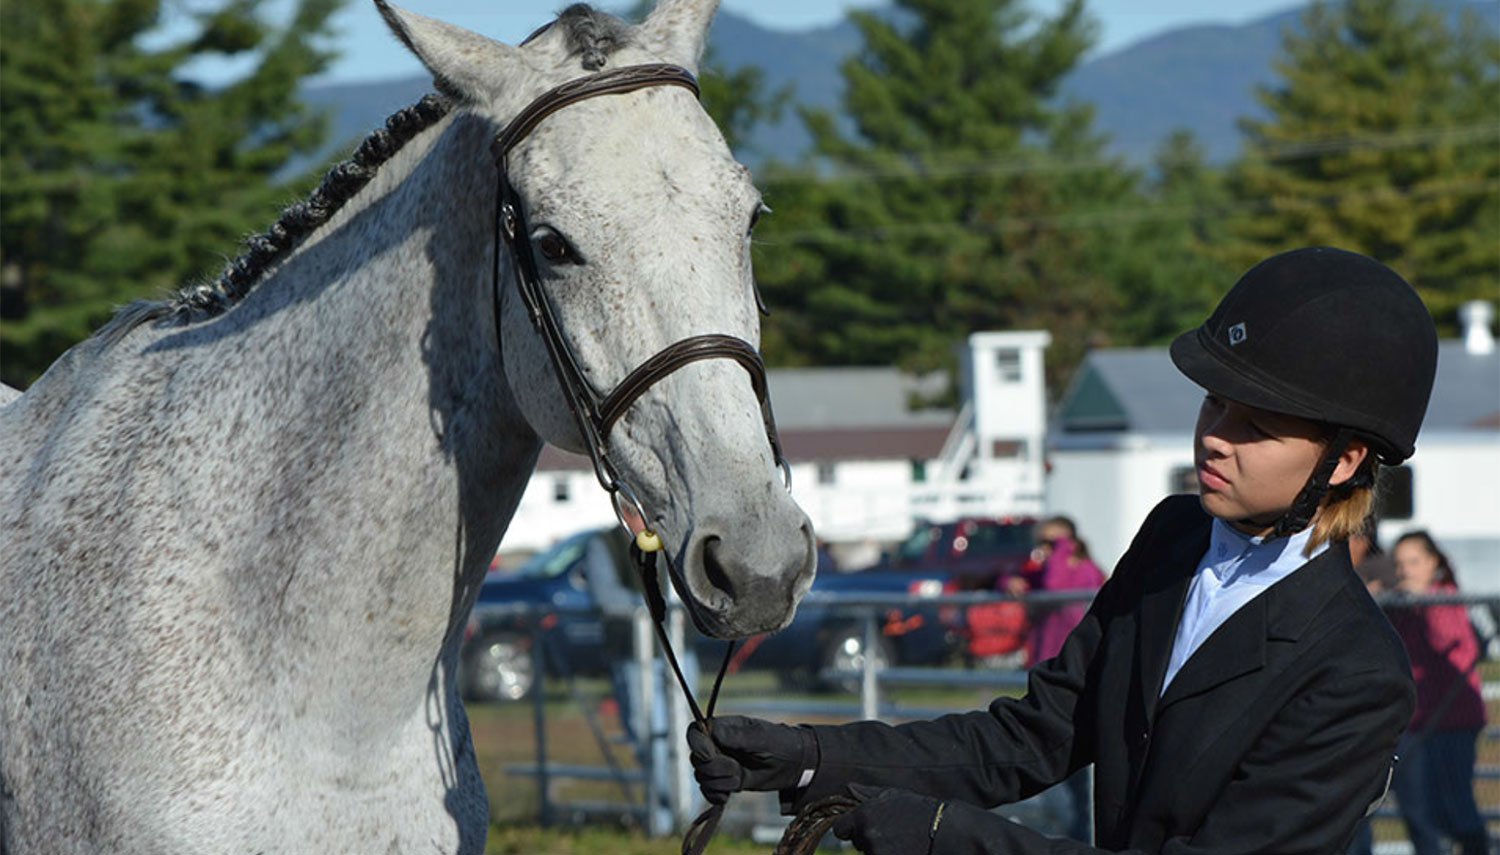 4-h'er with horse